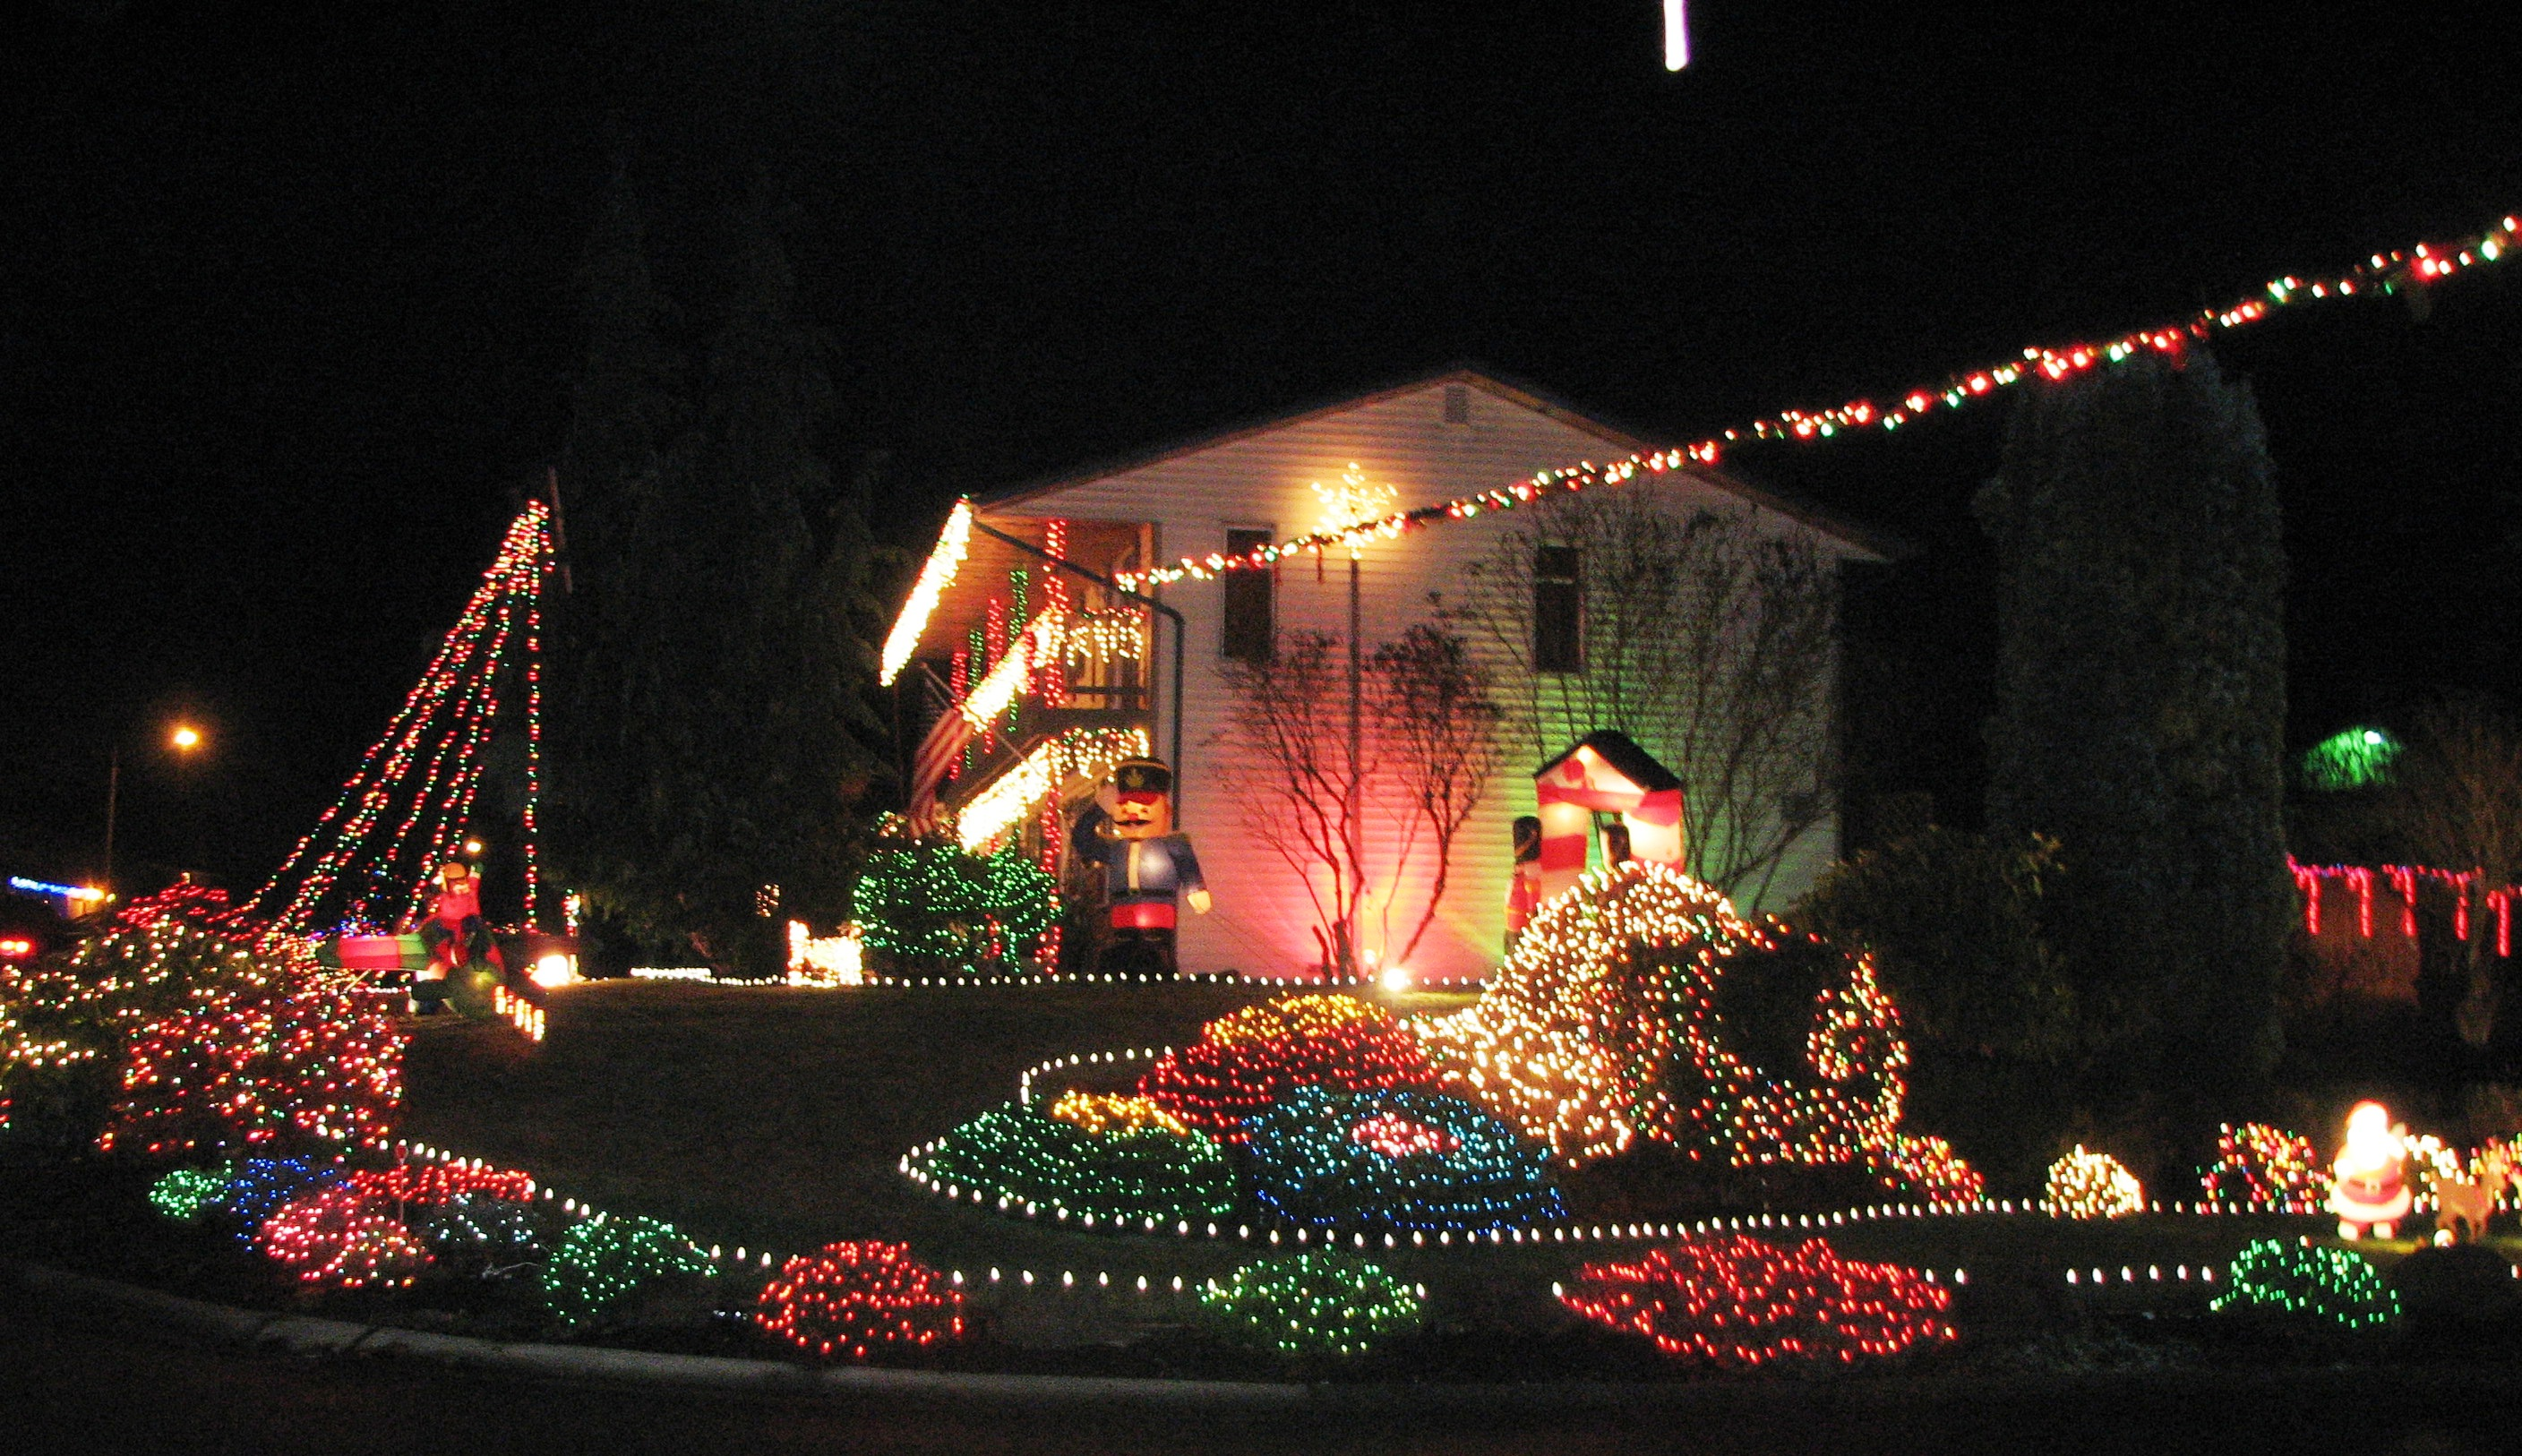 Everett's Fir Grove Neighborhood Lights Up for Charity ...